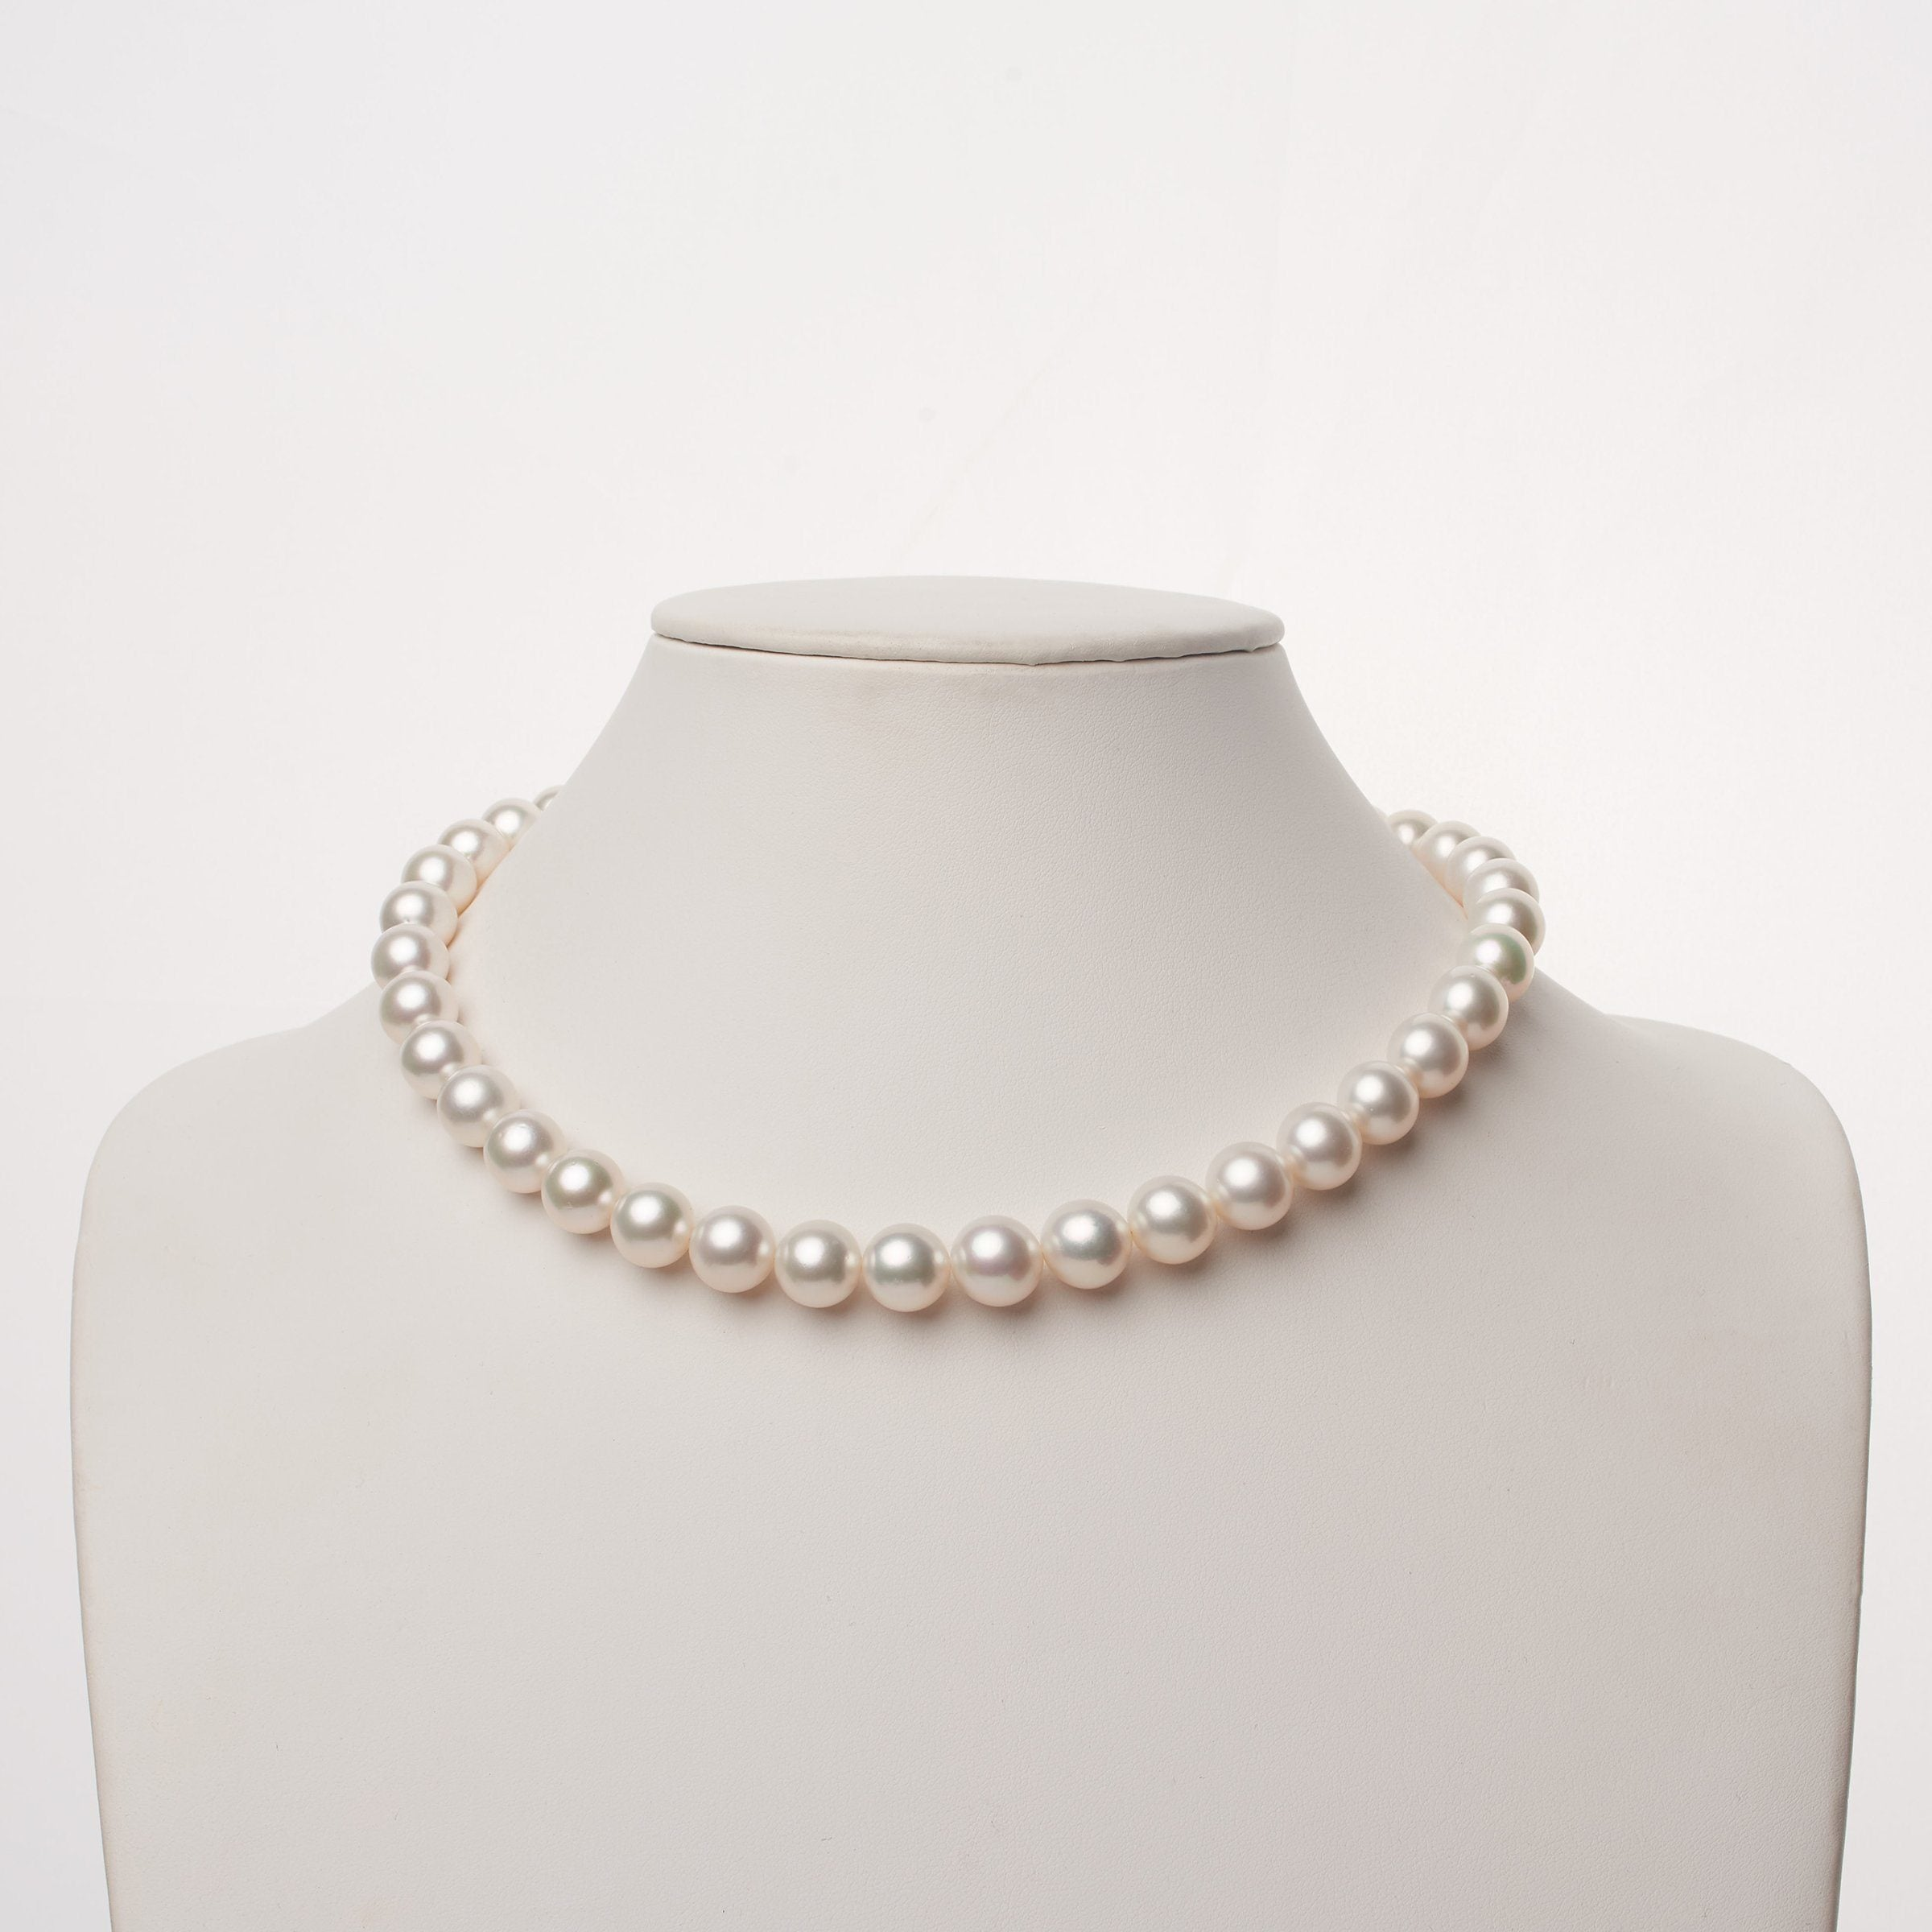 The Harmony White South Sea Pearl Necklace